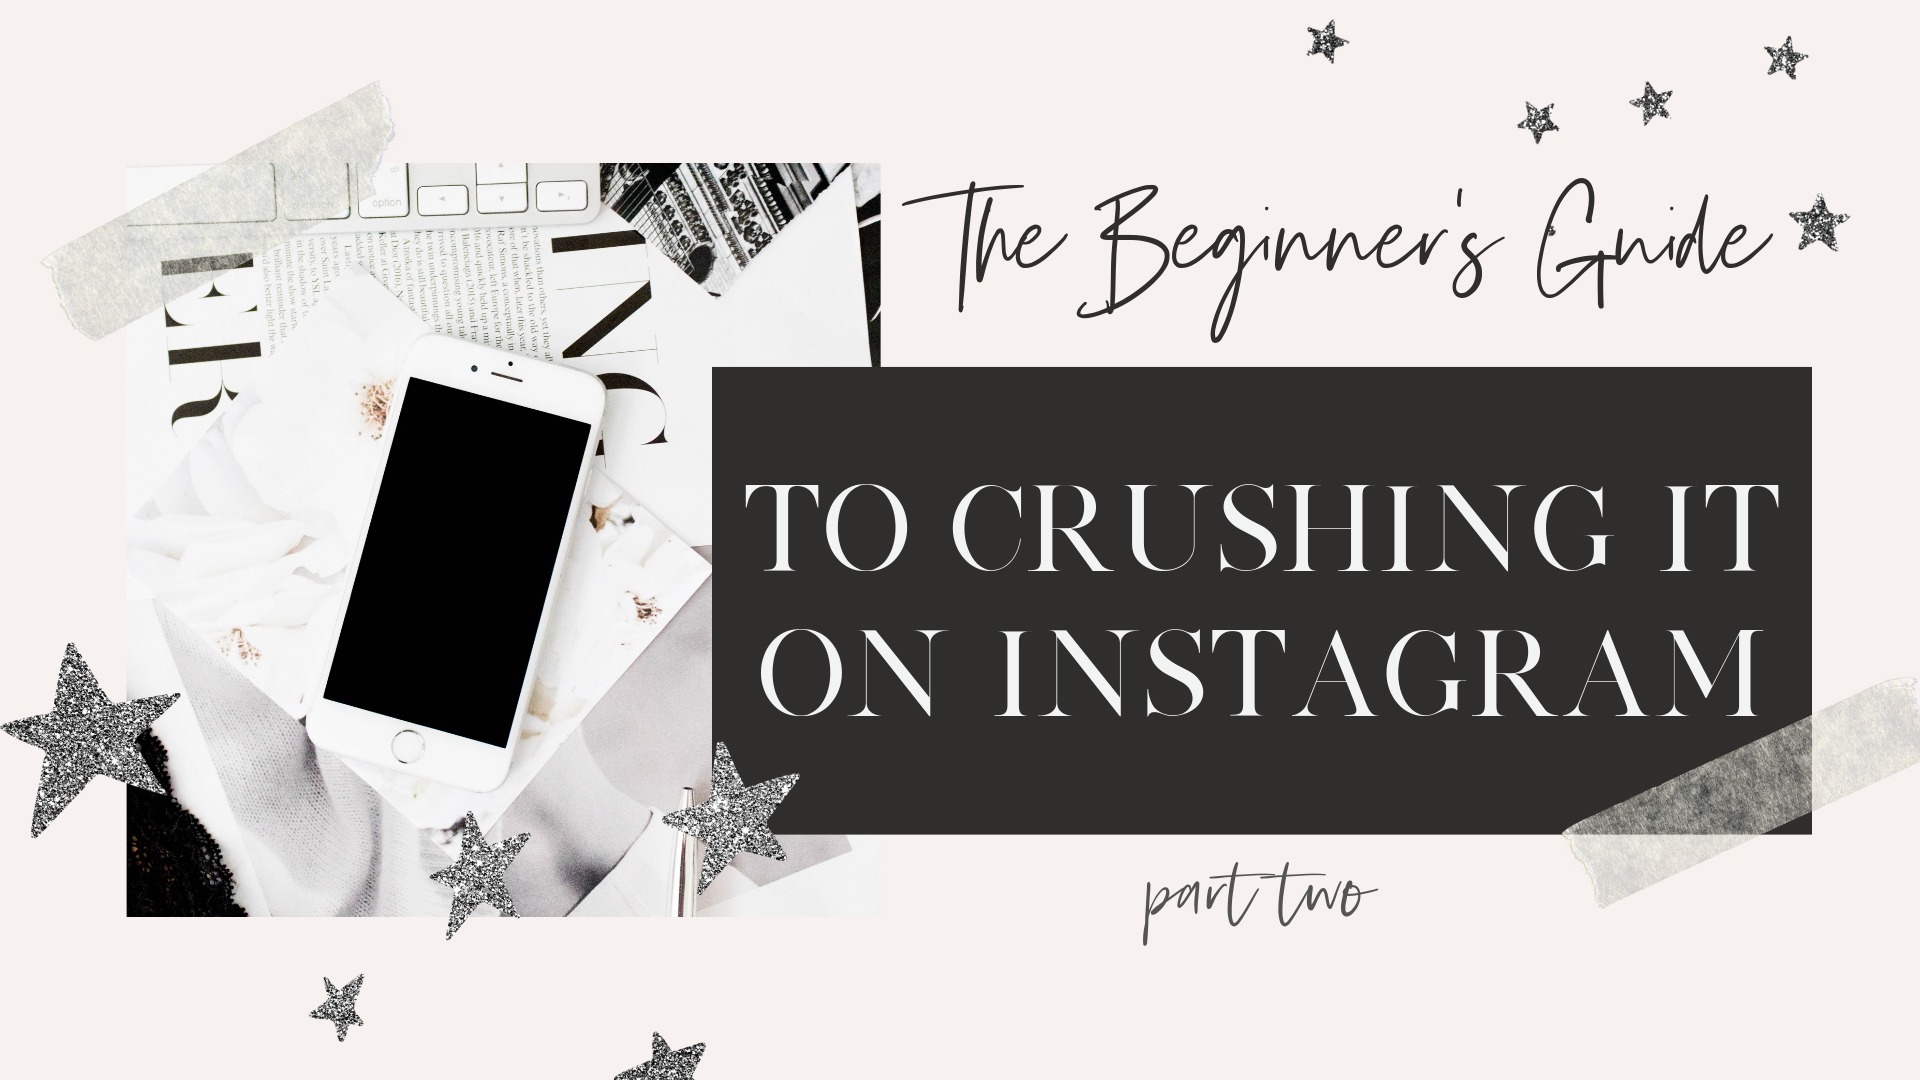 the beginners guide to crushing it on instagram